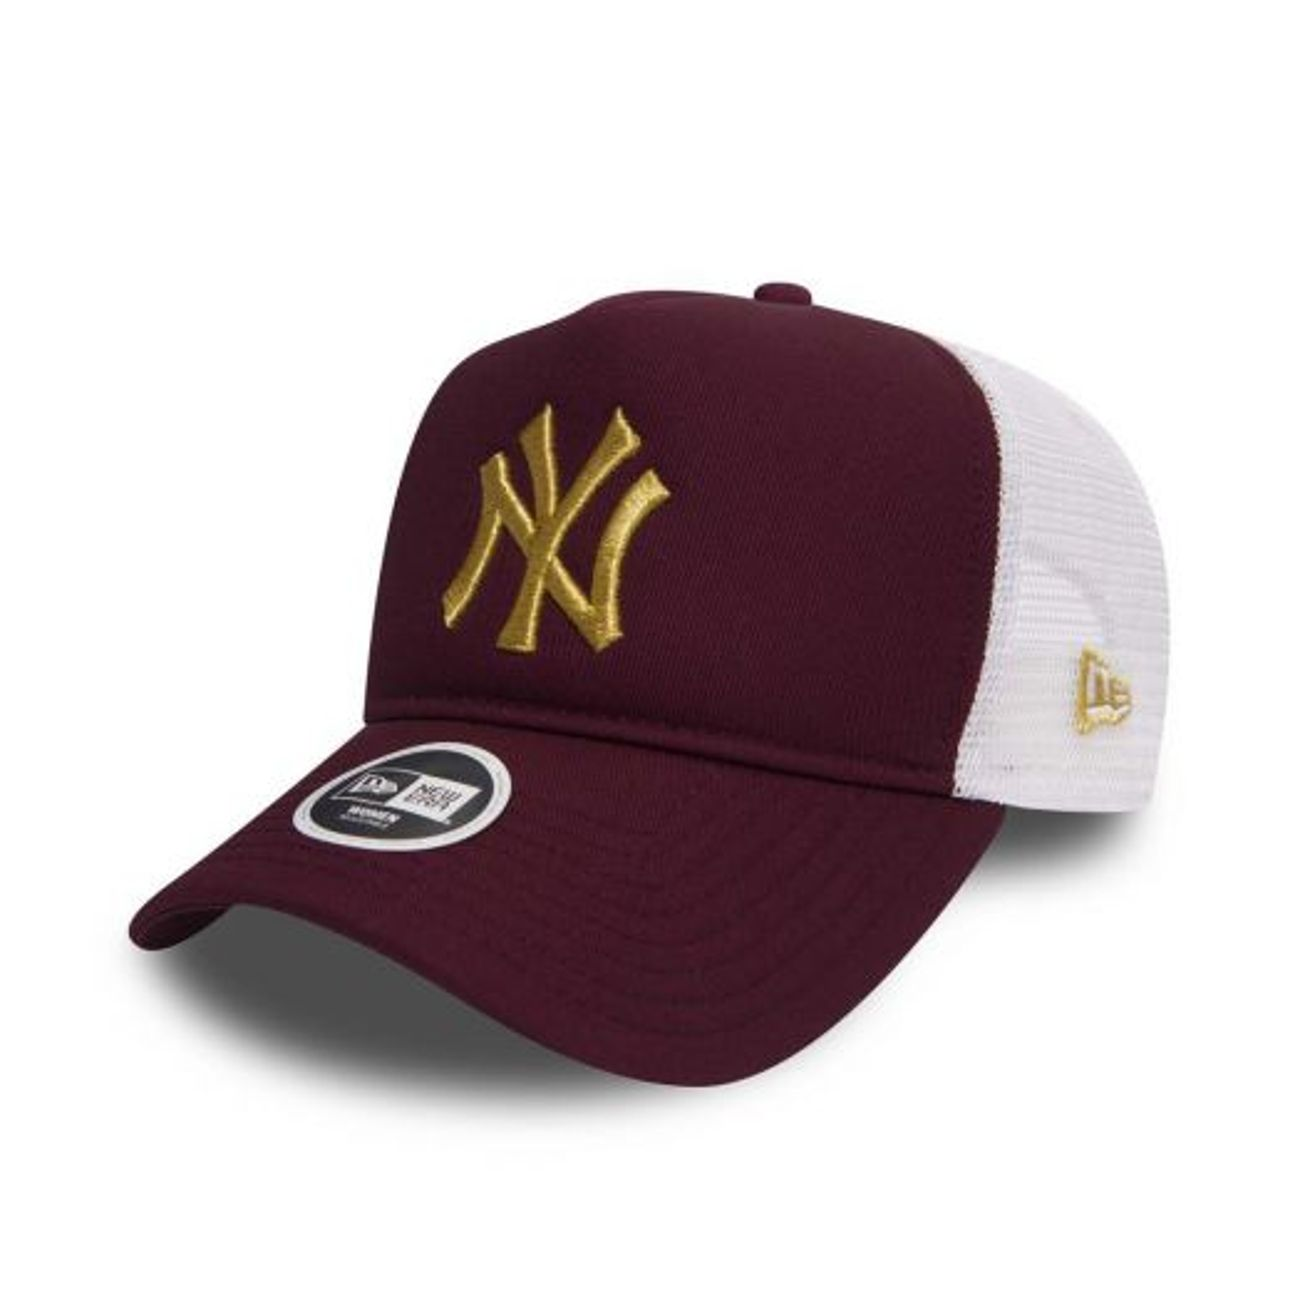 49f3bed6626 casquette-trucker-femme -new-era-new-york-yankees-essential-truck-bordeaux-or 1 v3.jpeg